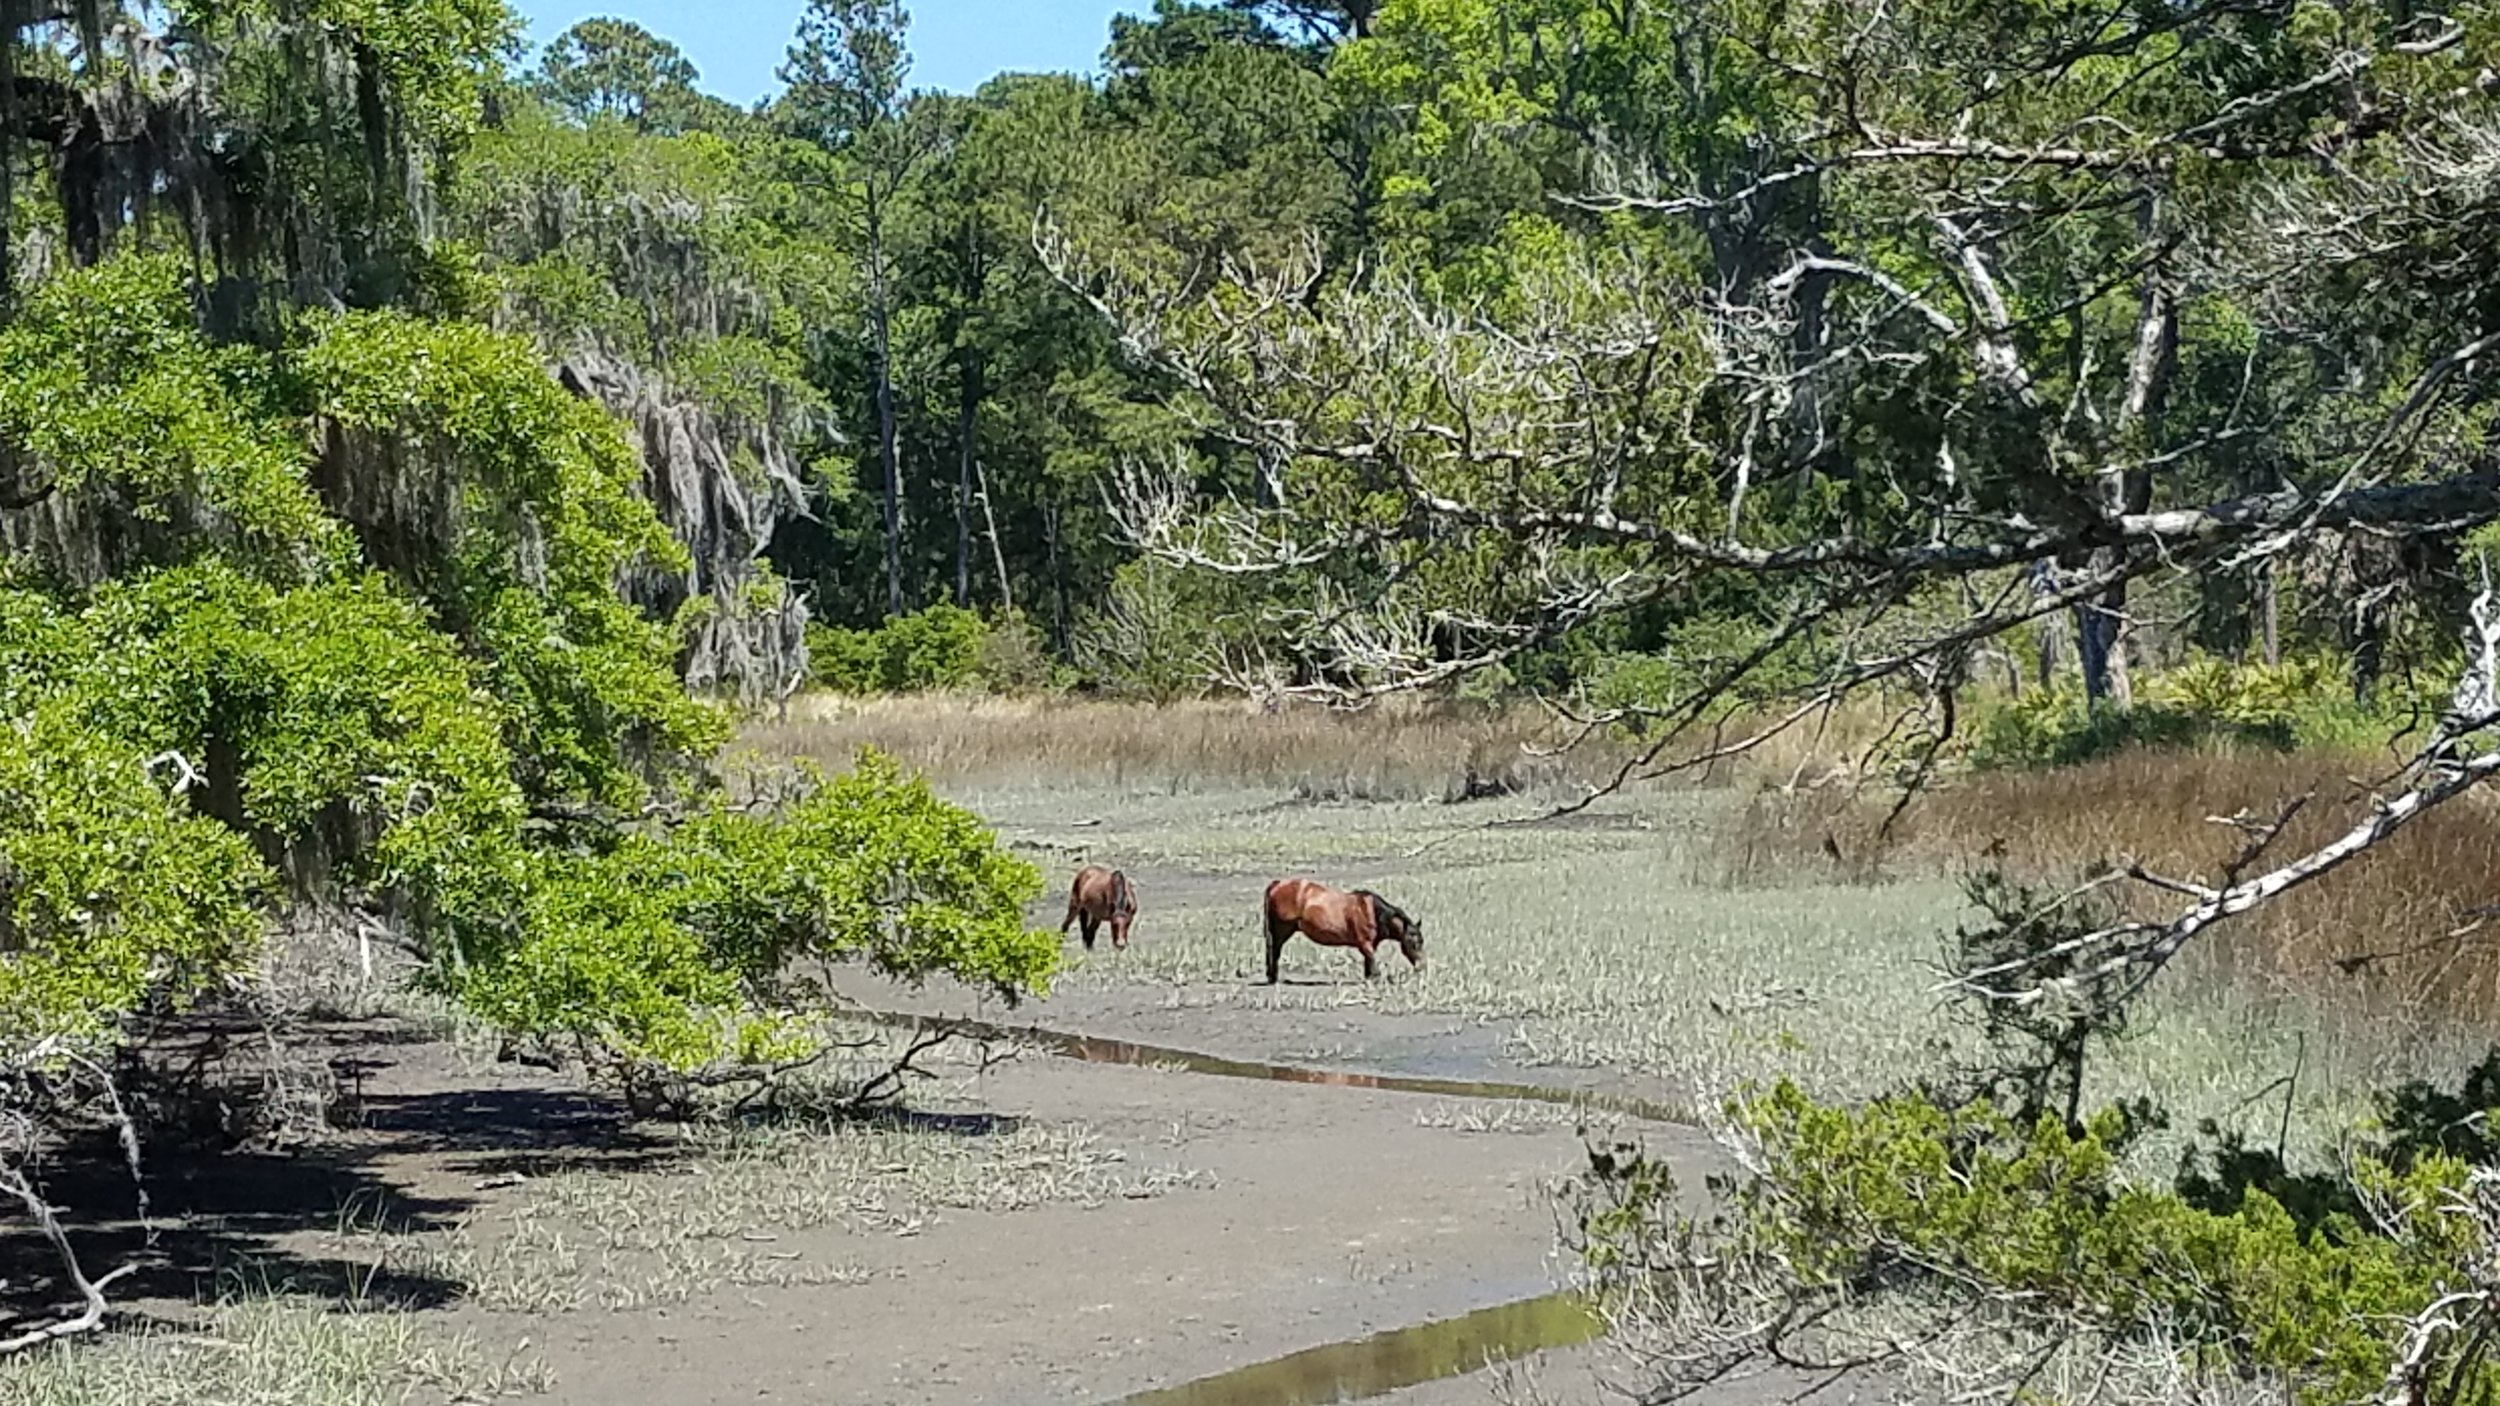 The feral horses of Cumberland Island. For more go to www.wheretraveler.com